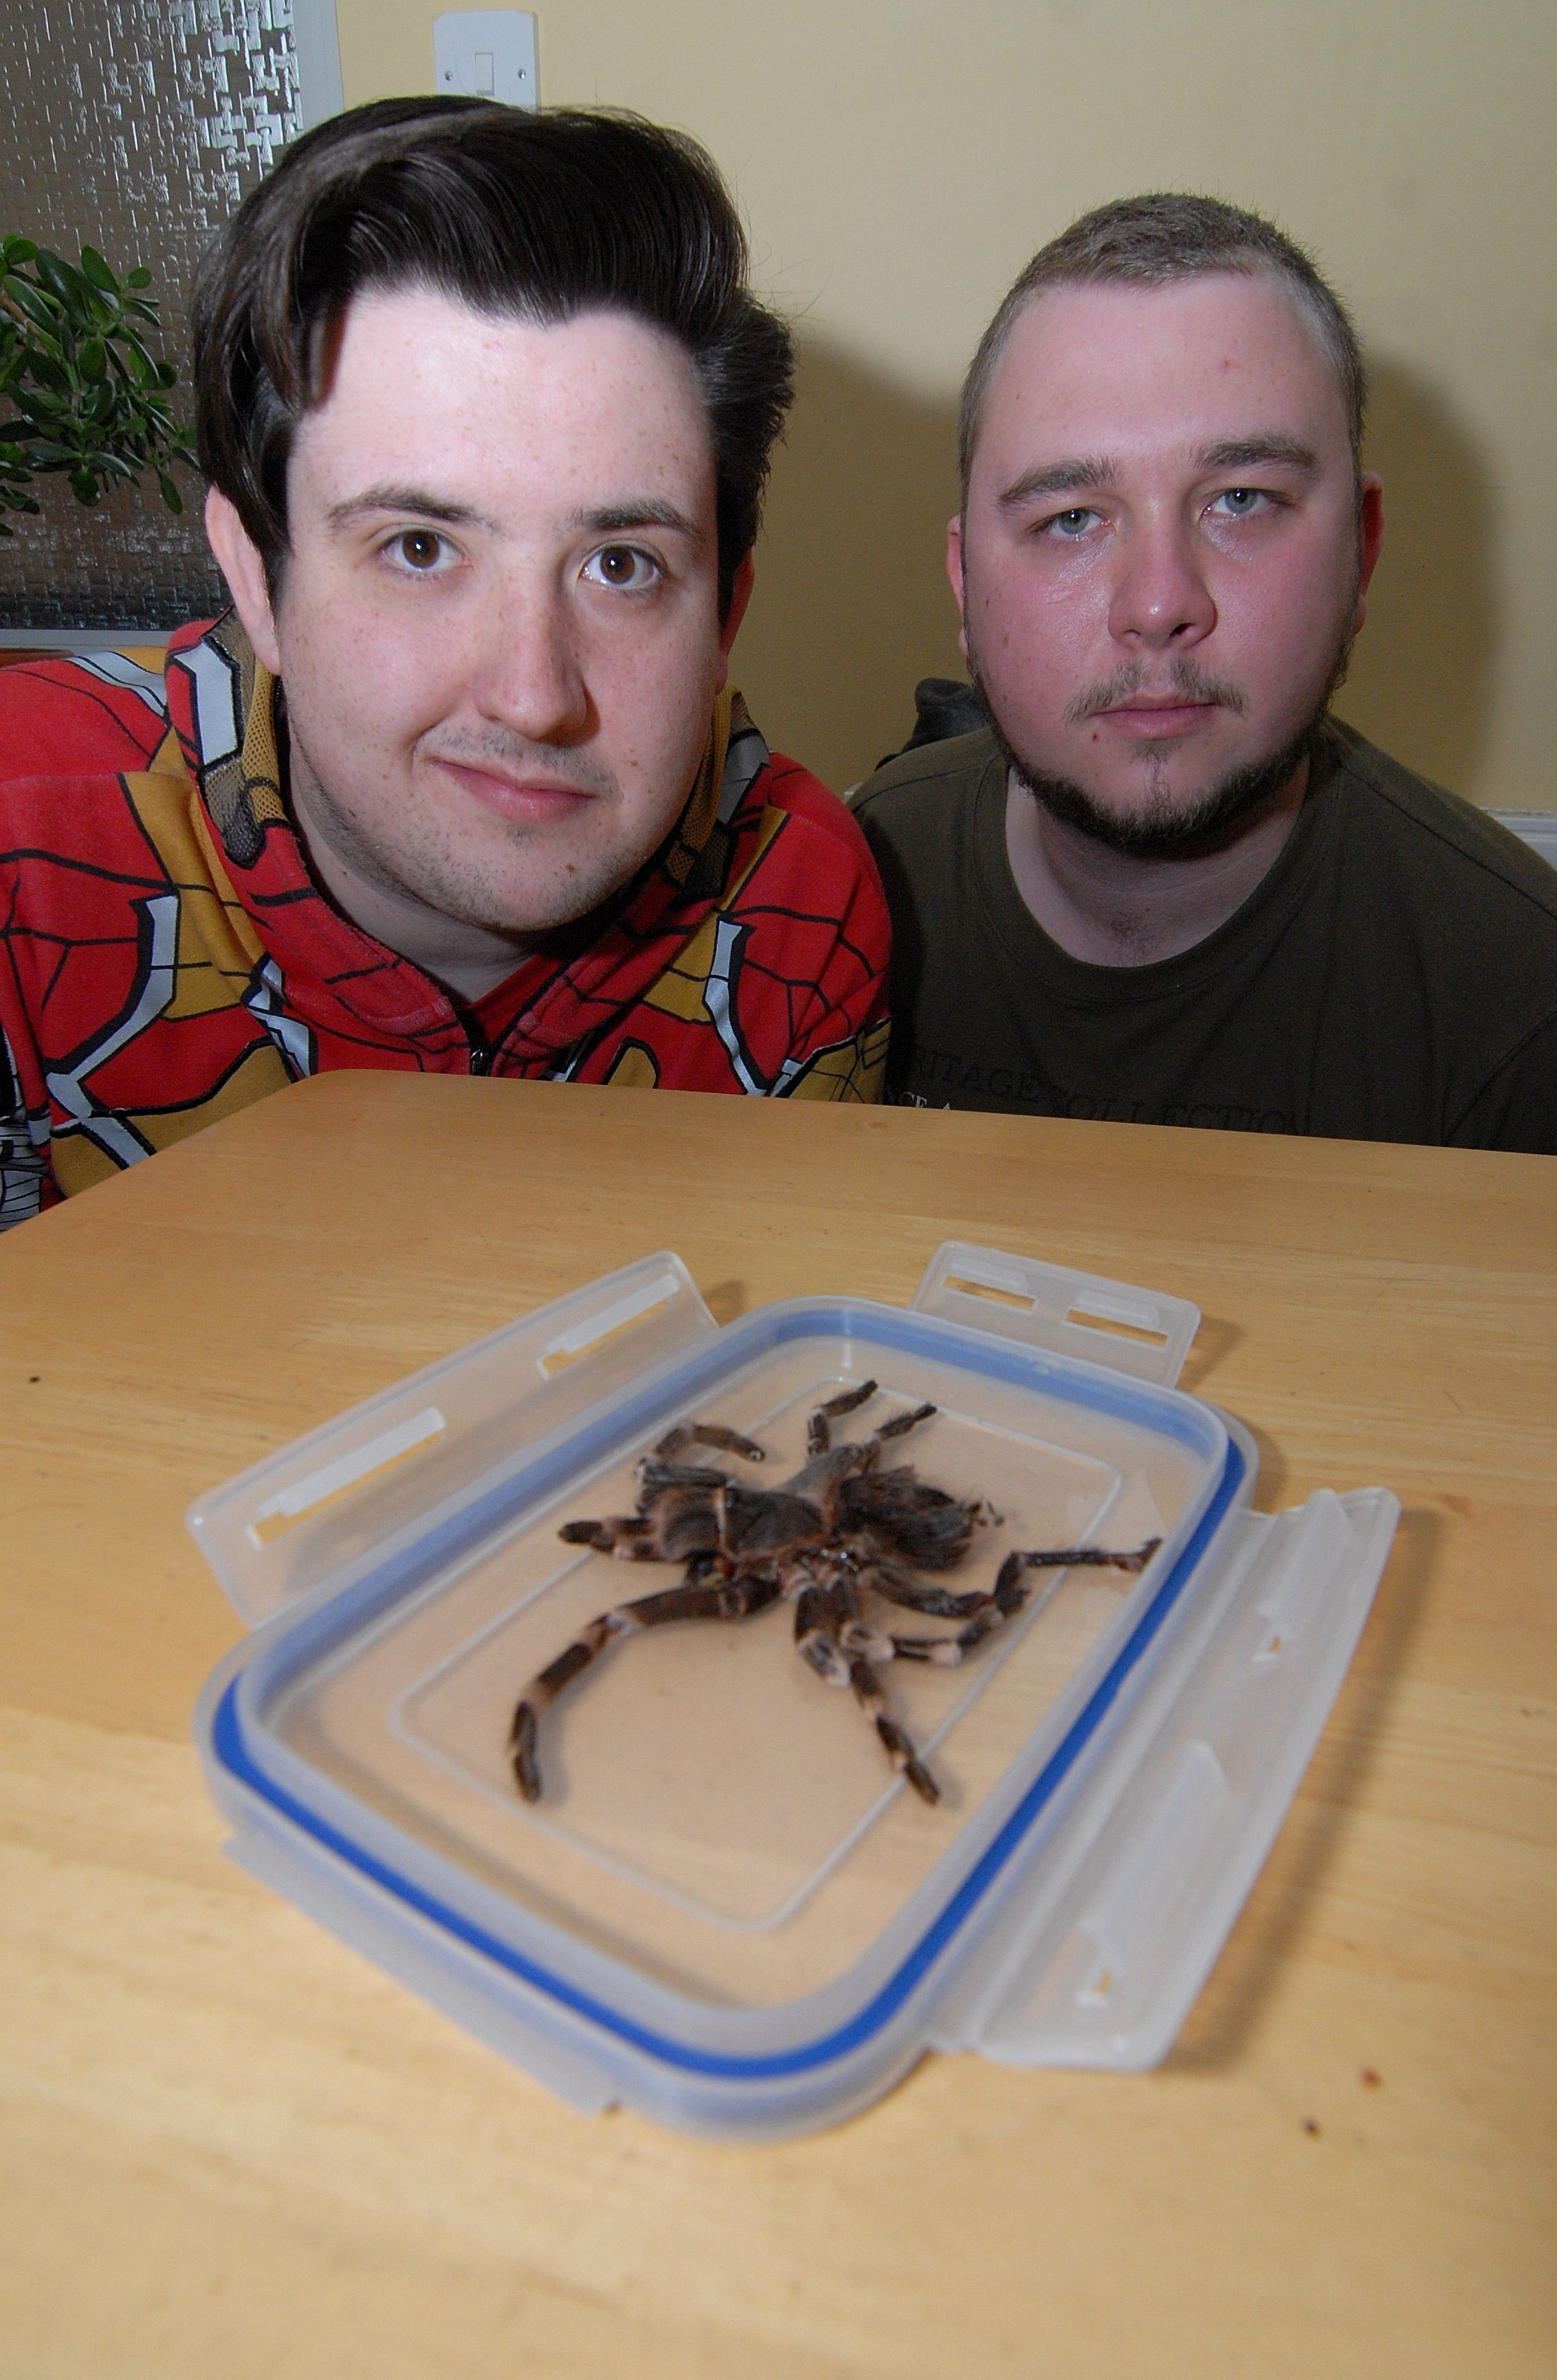 Tarantula found on Pershore pavement